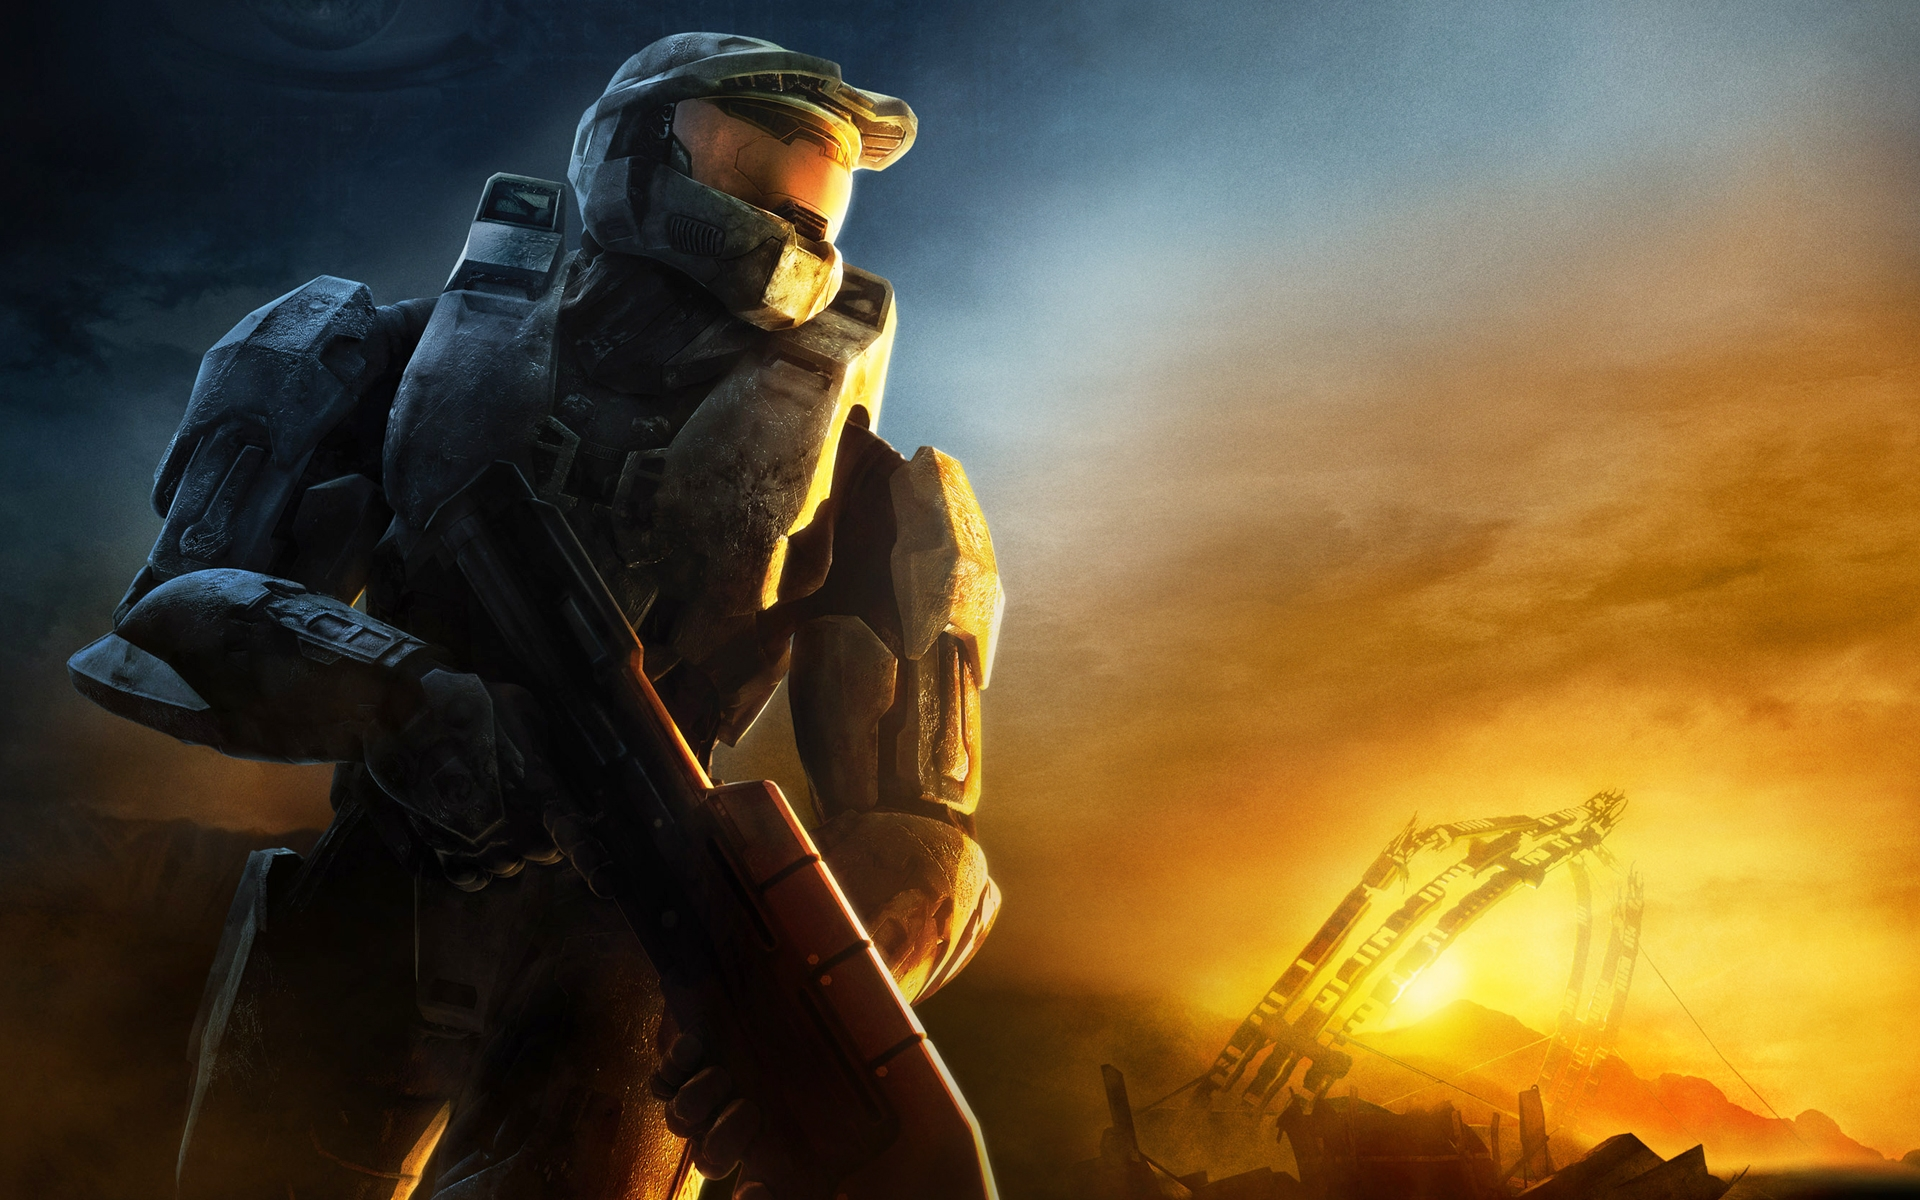 wallpaper free game halo - photo #7